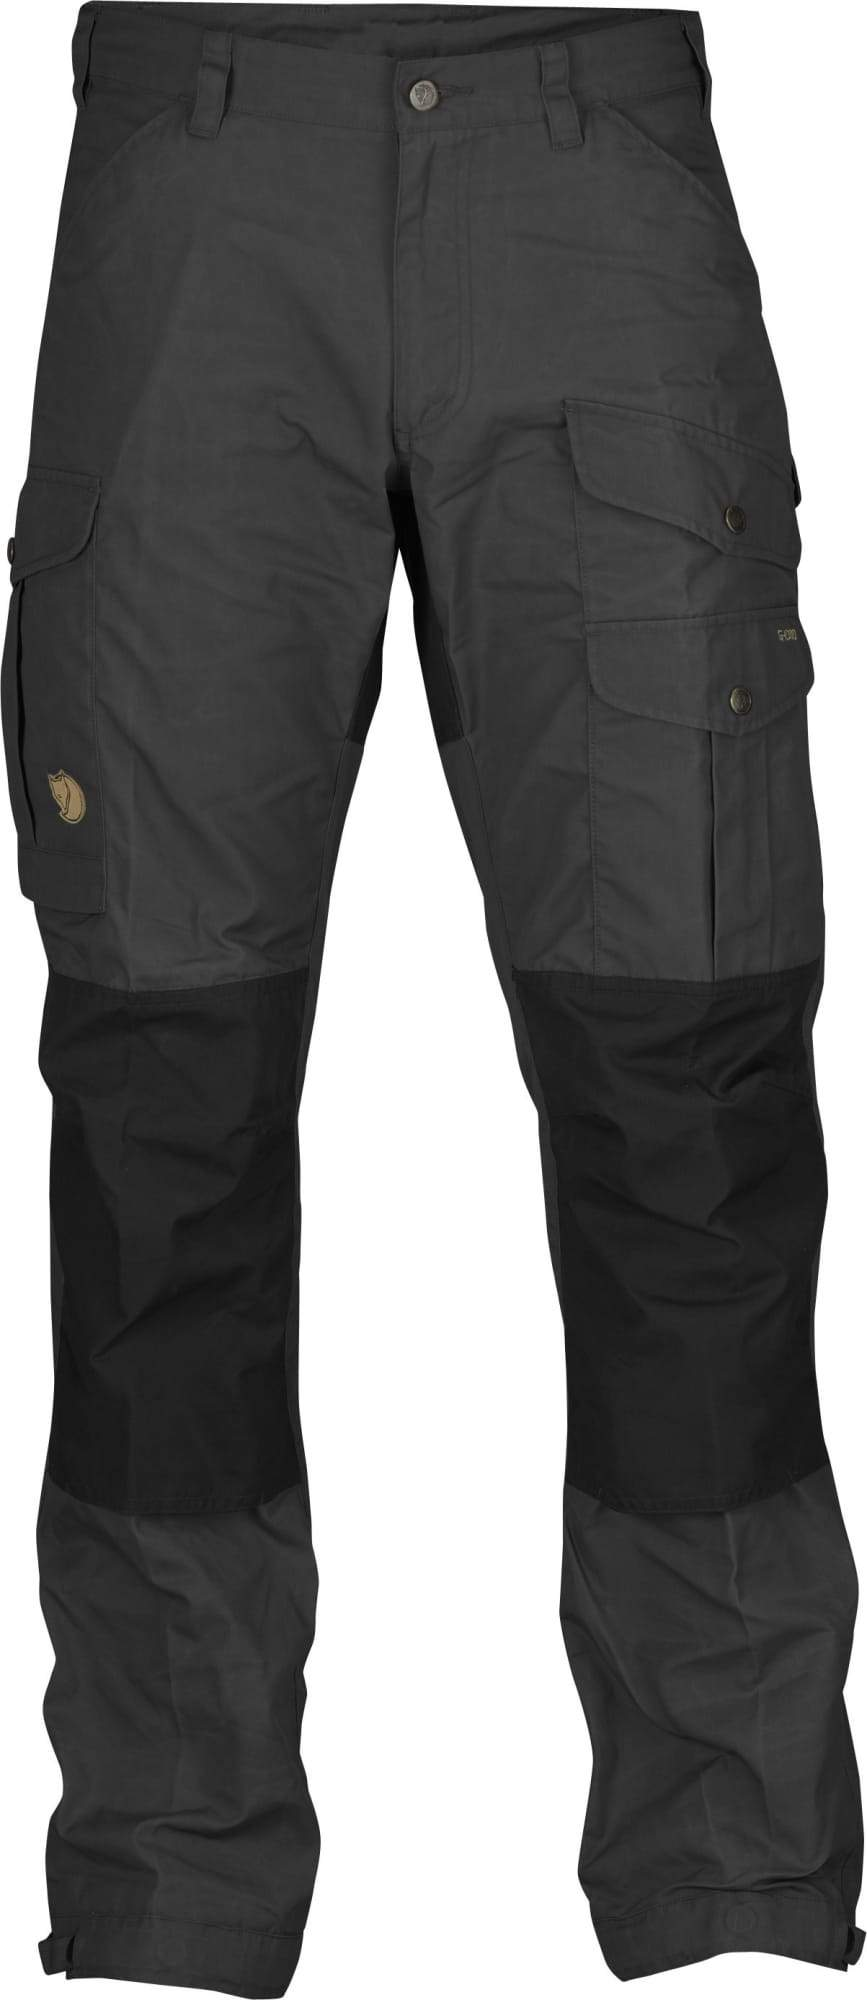 Vidda Pro Trousers - Long (M)